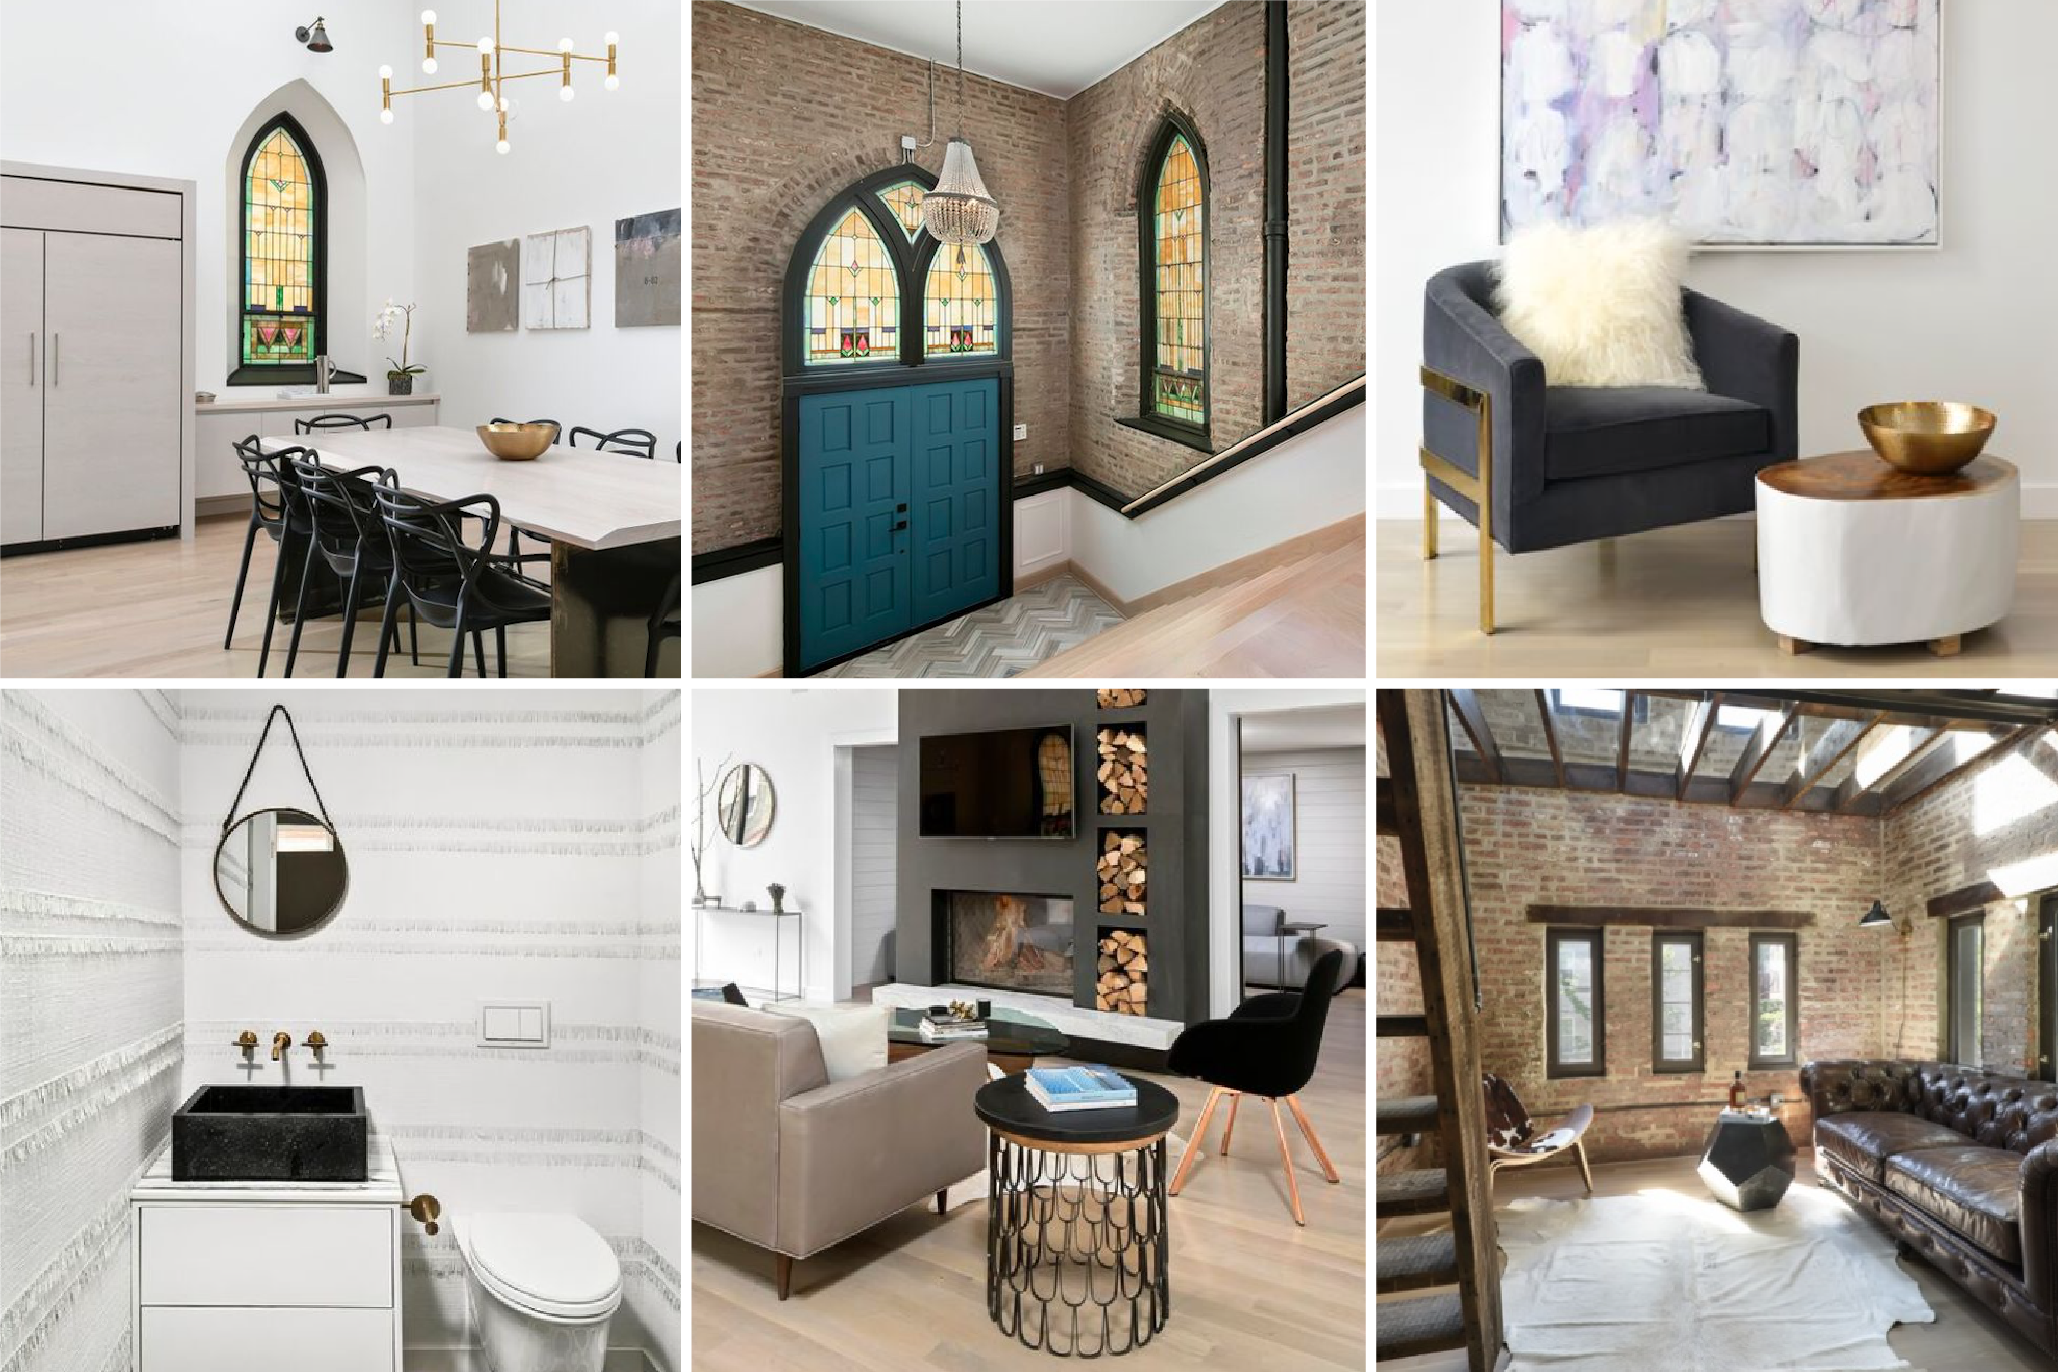 ACCESSORIES - Chicago church conversion - The Wishlist